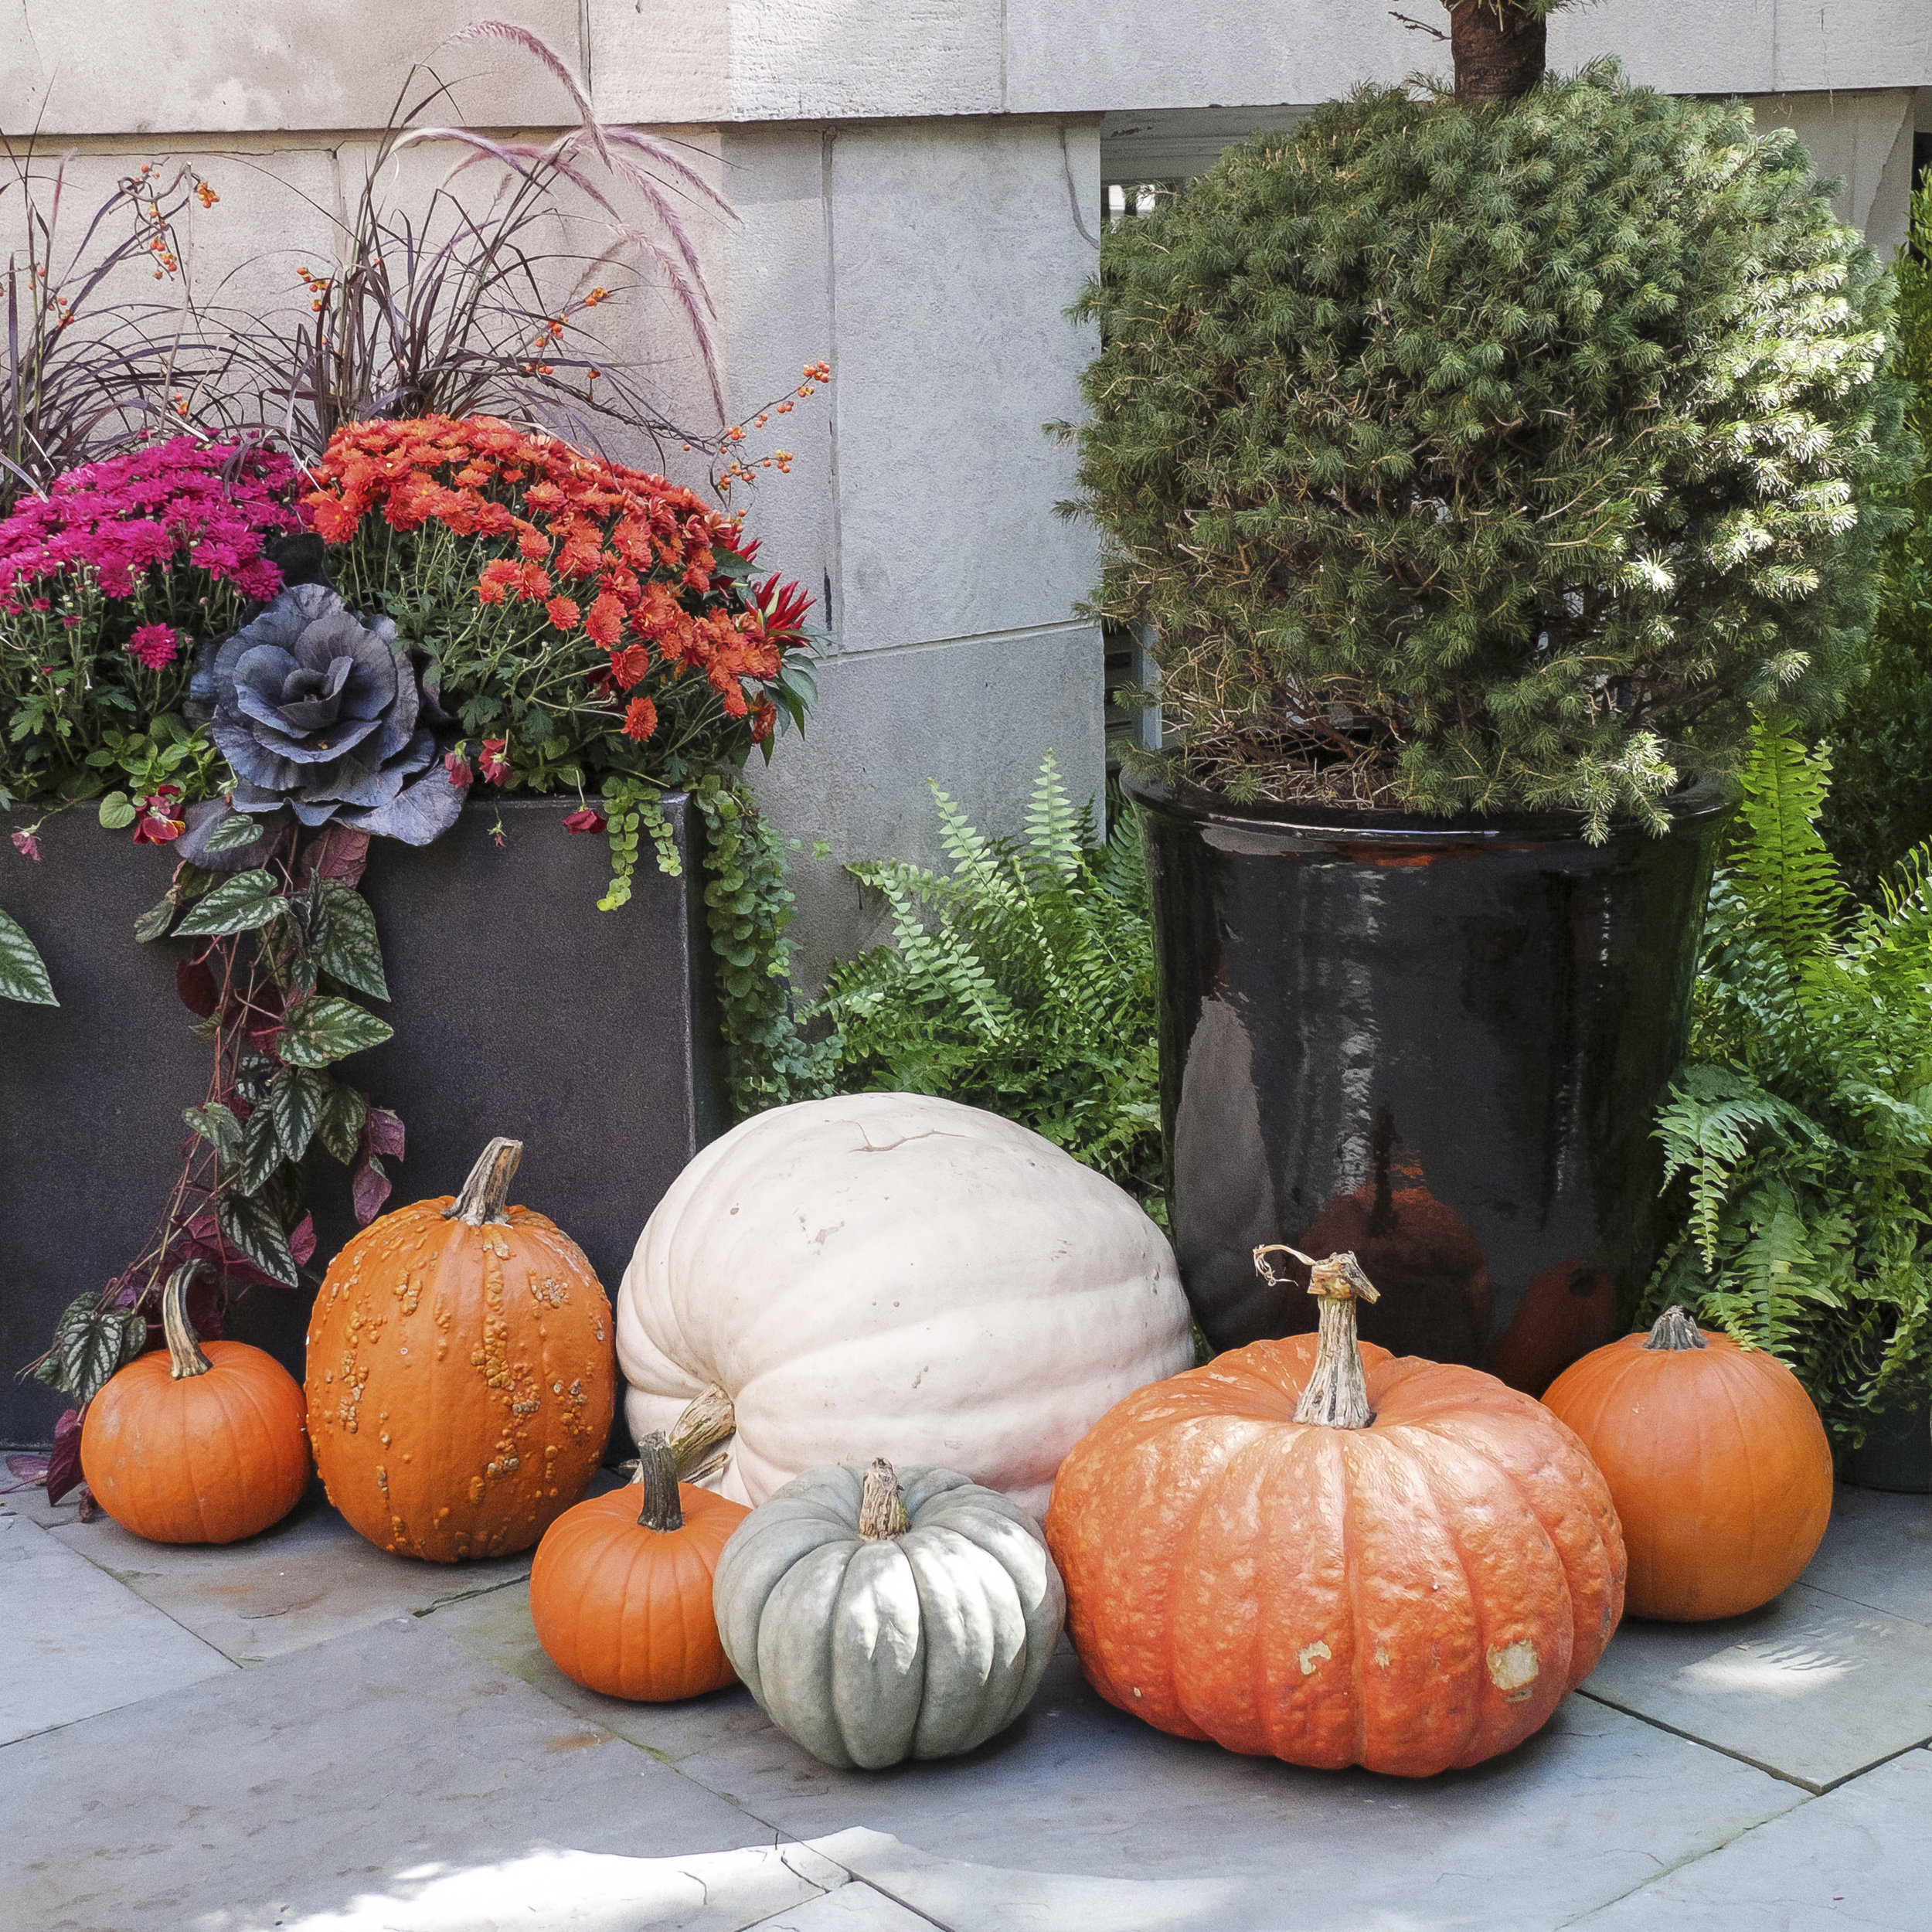 Simply clustering a variety of harvested pumpkins, gourds and squashes can just as easily elevate your home's decor.